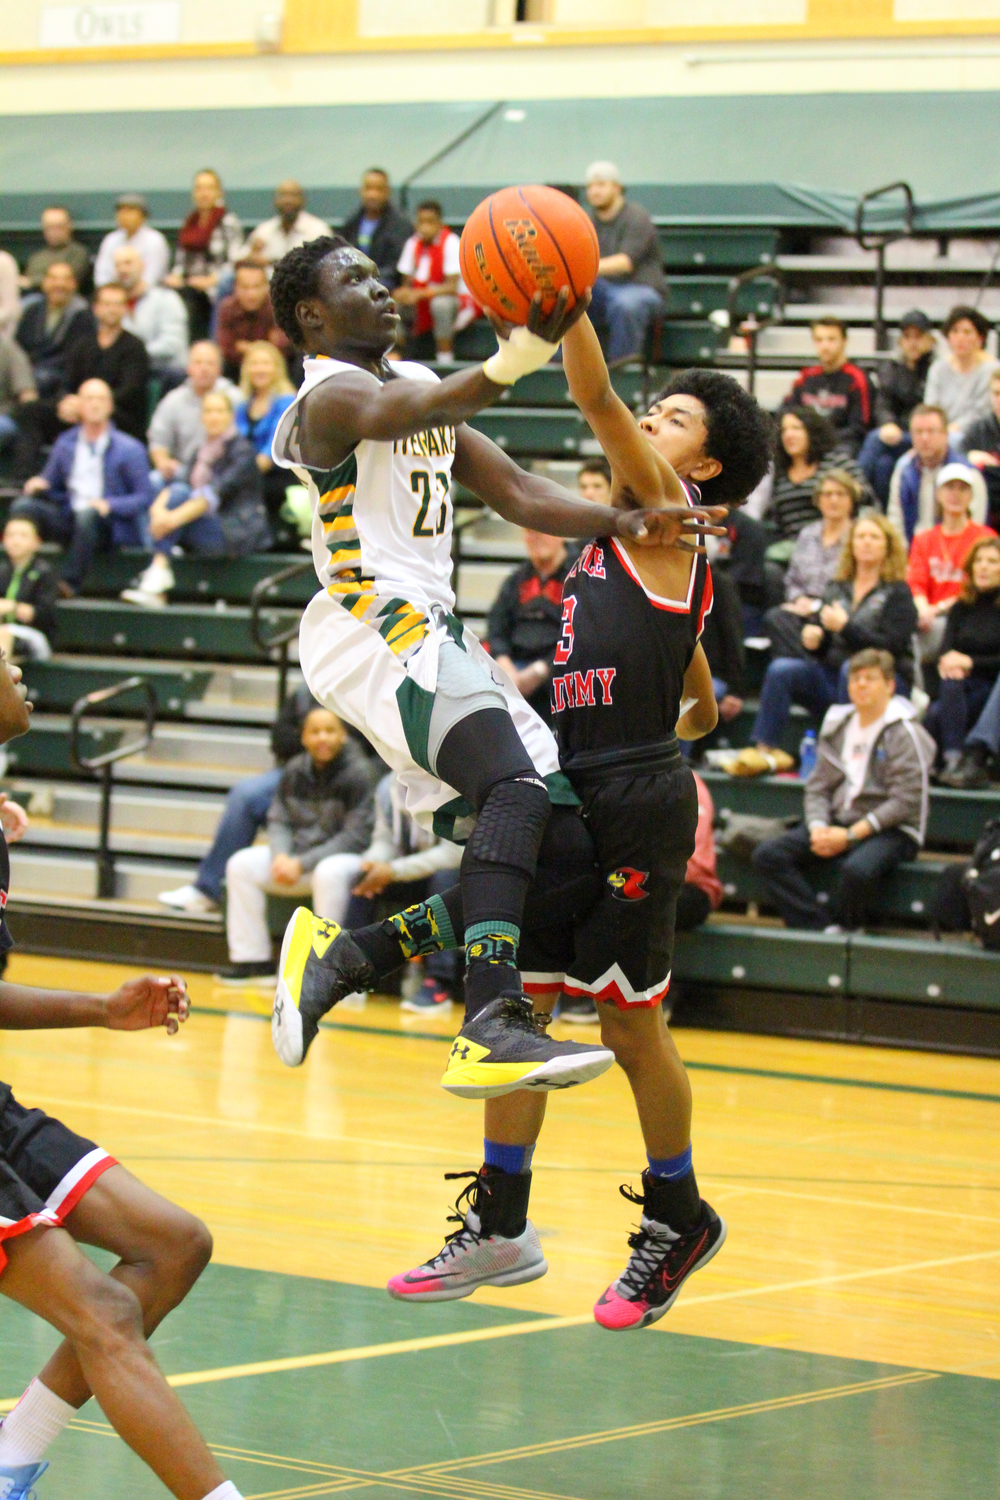 195-2016-01-23 Overlake Boys Varsity Basketball v Seattle Academy-680.jpg